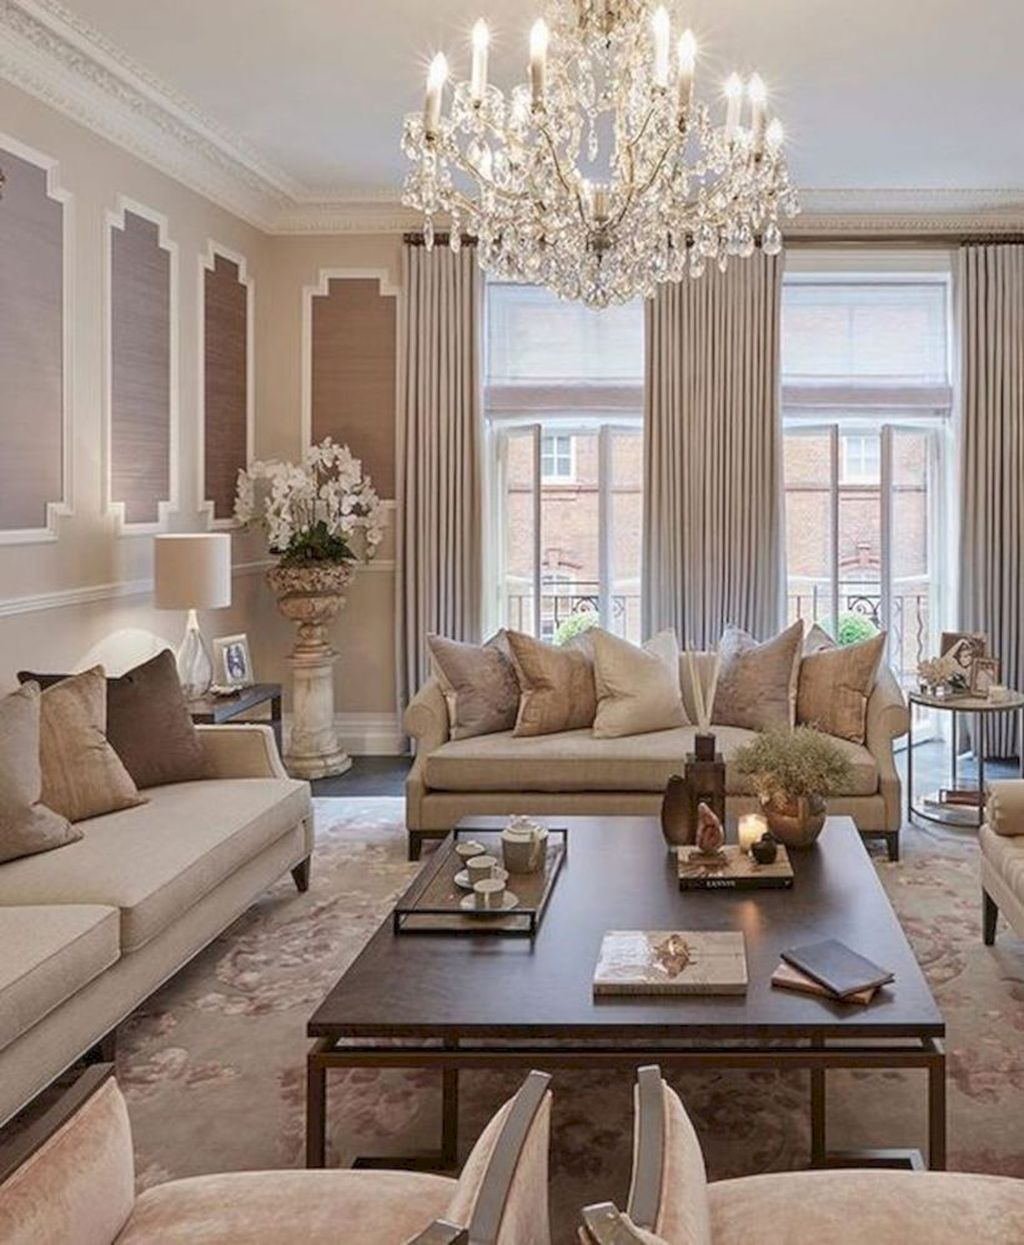 Elegant Living Room: 40 Luxurious And Elegant Living Room Design Ideas